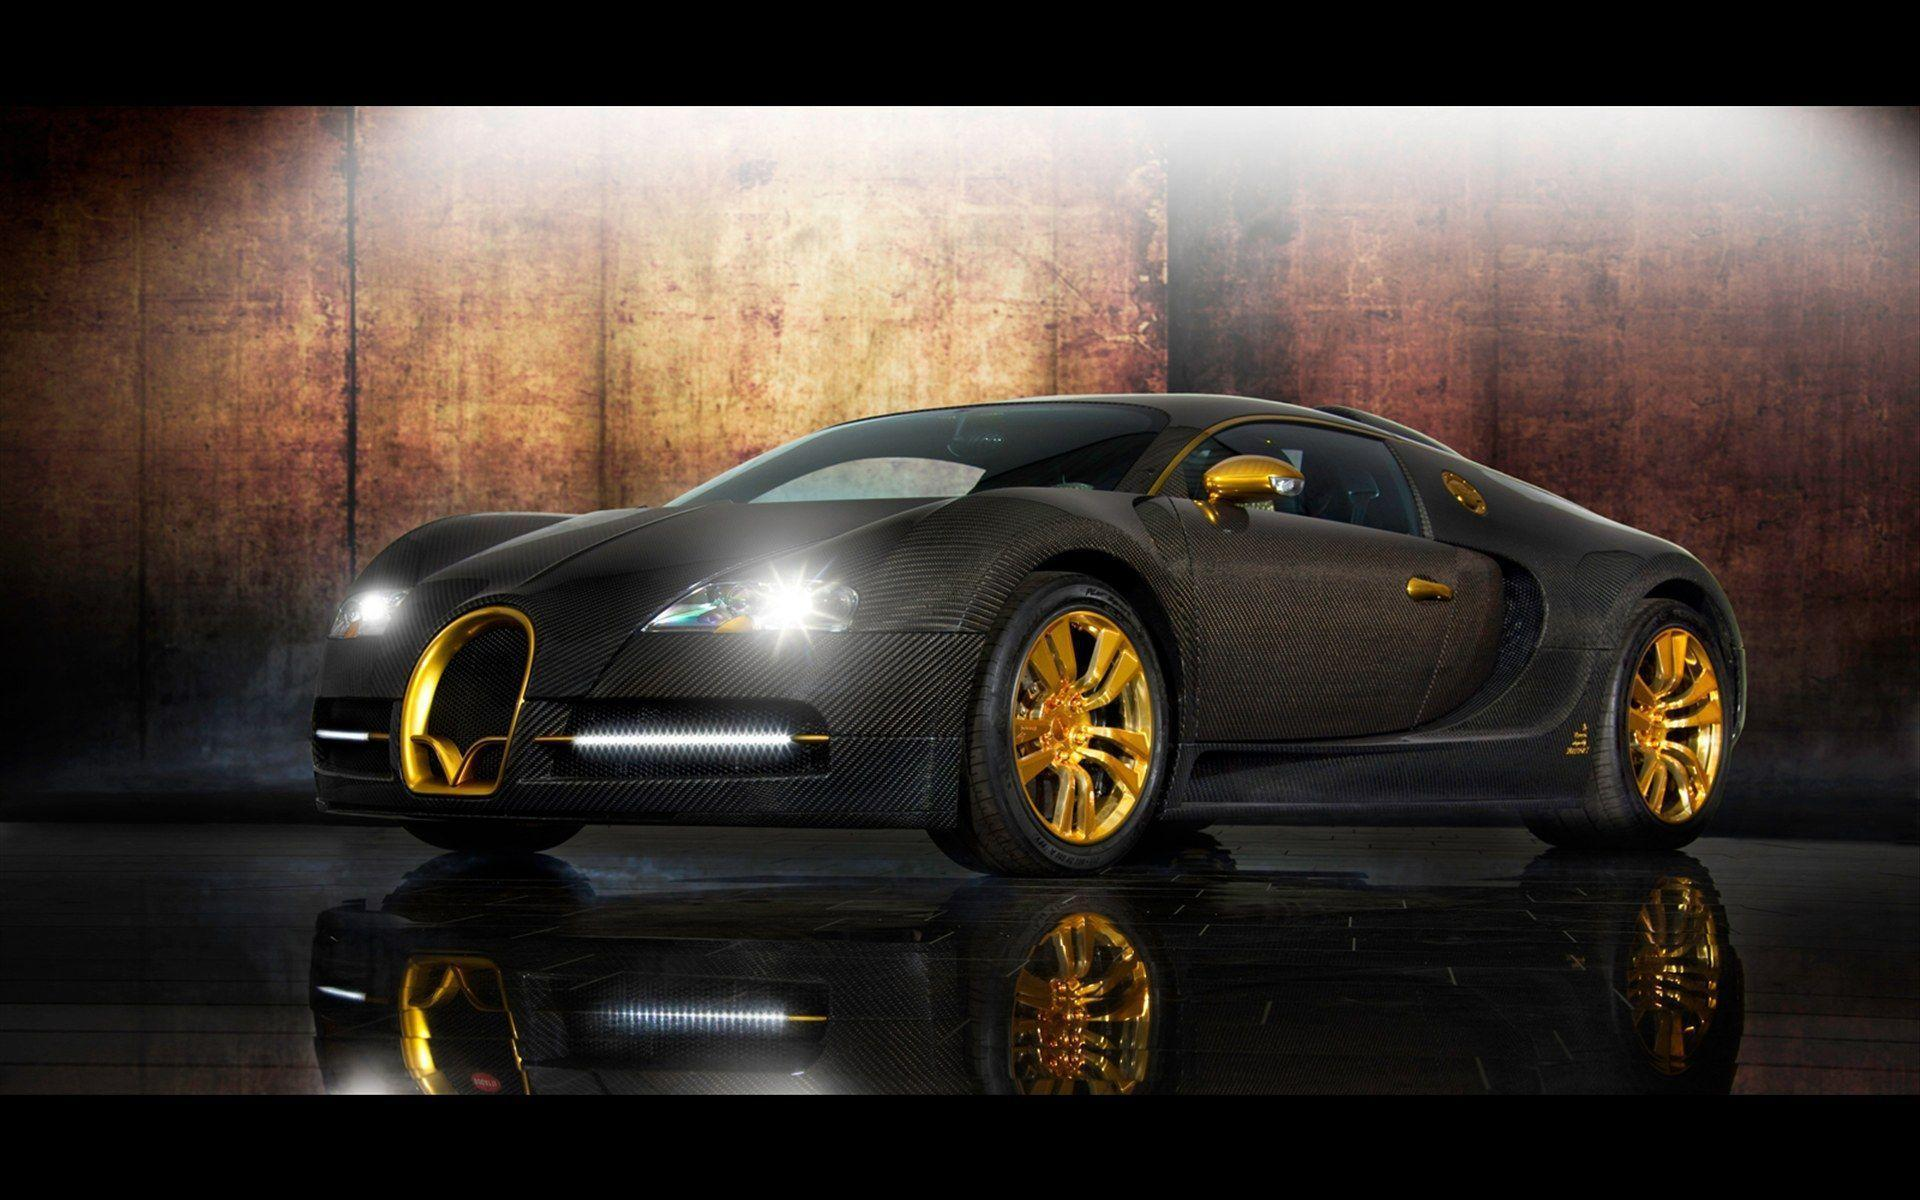 1775329 Bugatti wallpaper HD free wallpapers backgrounds images ...